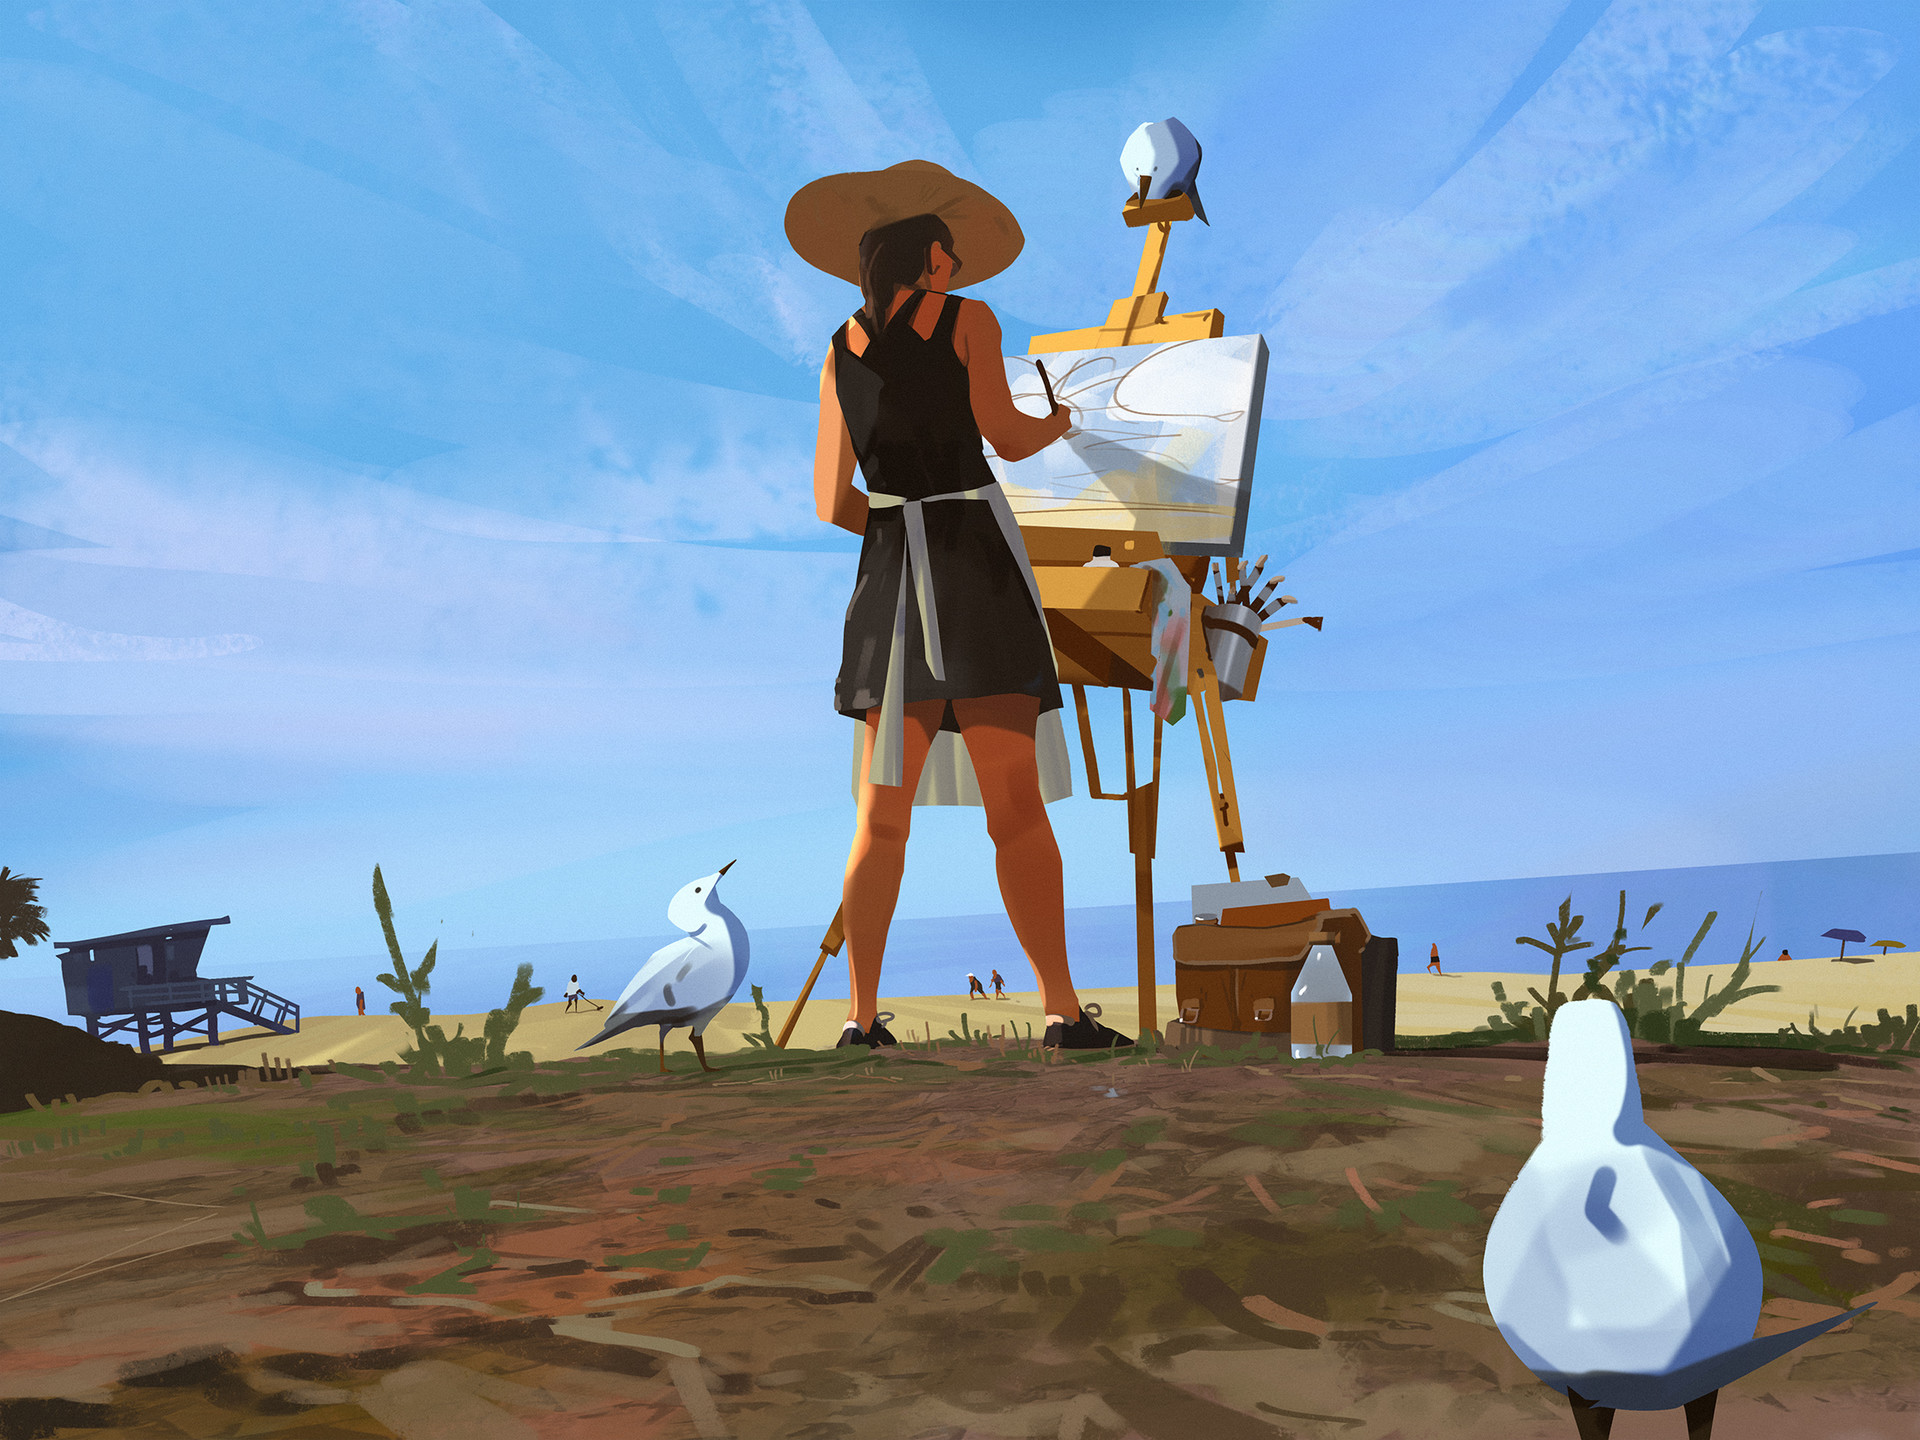 Atey ghailan the artist high res